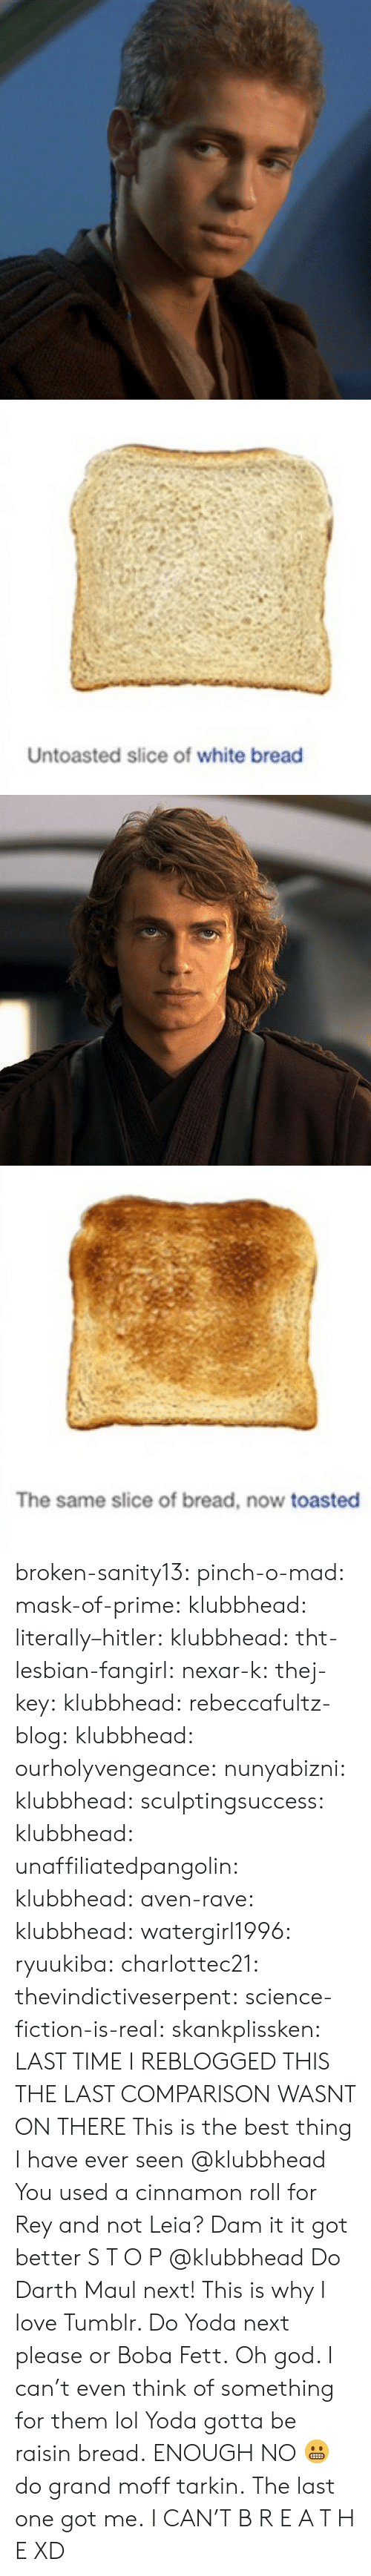 darth: Untoasted slice of white bread   The same slice of bread, now toasted broken-sanity13:  pinch-o-mad:   mask-of-prime:  klubbhead:  literally–hitler:  klubbhead:  tht-lesbian-fangirl:  nexar-k:  thej-key:  klubbhead:  rebeccafultz-blog:   klubbhead:  ourholyvengeance:  nunyabizni:  klubbhead:  sculptingsuccess:  klubbhead:   unaffiliatedpangolin:  klubbhead:  aven-rave:  klubbhead:   watergirl1996:  ryuukiba:  charlottec21:  thevindictiveserpent:  science-fiction-is-real:  skankplissken:                   LAST TIME I REBLOGGED THIS THE LAST COMPARISON WASNT ON THERE    This is the best thing I have ever seen   @klubbhead You used a cinnamon roll for Rey and not Leia?    Dam it it got better   S T O P  @klubbhead Do Darth Maul next!   This is why I love Tumblr. Do Yoda next please or Boba Fett.   Oh god. I can't even think of something for them lol  Yoda gotta be raisin bread.   ENOUGH   NO 😬 do grand moff tarkin.     The last one got me.   I CAN'T  B R E A T H E  XD